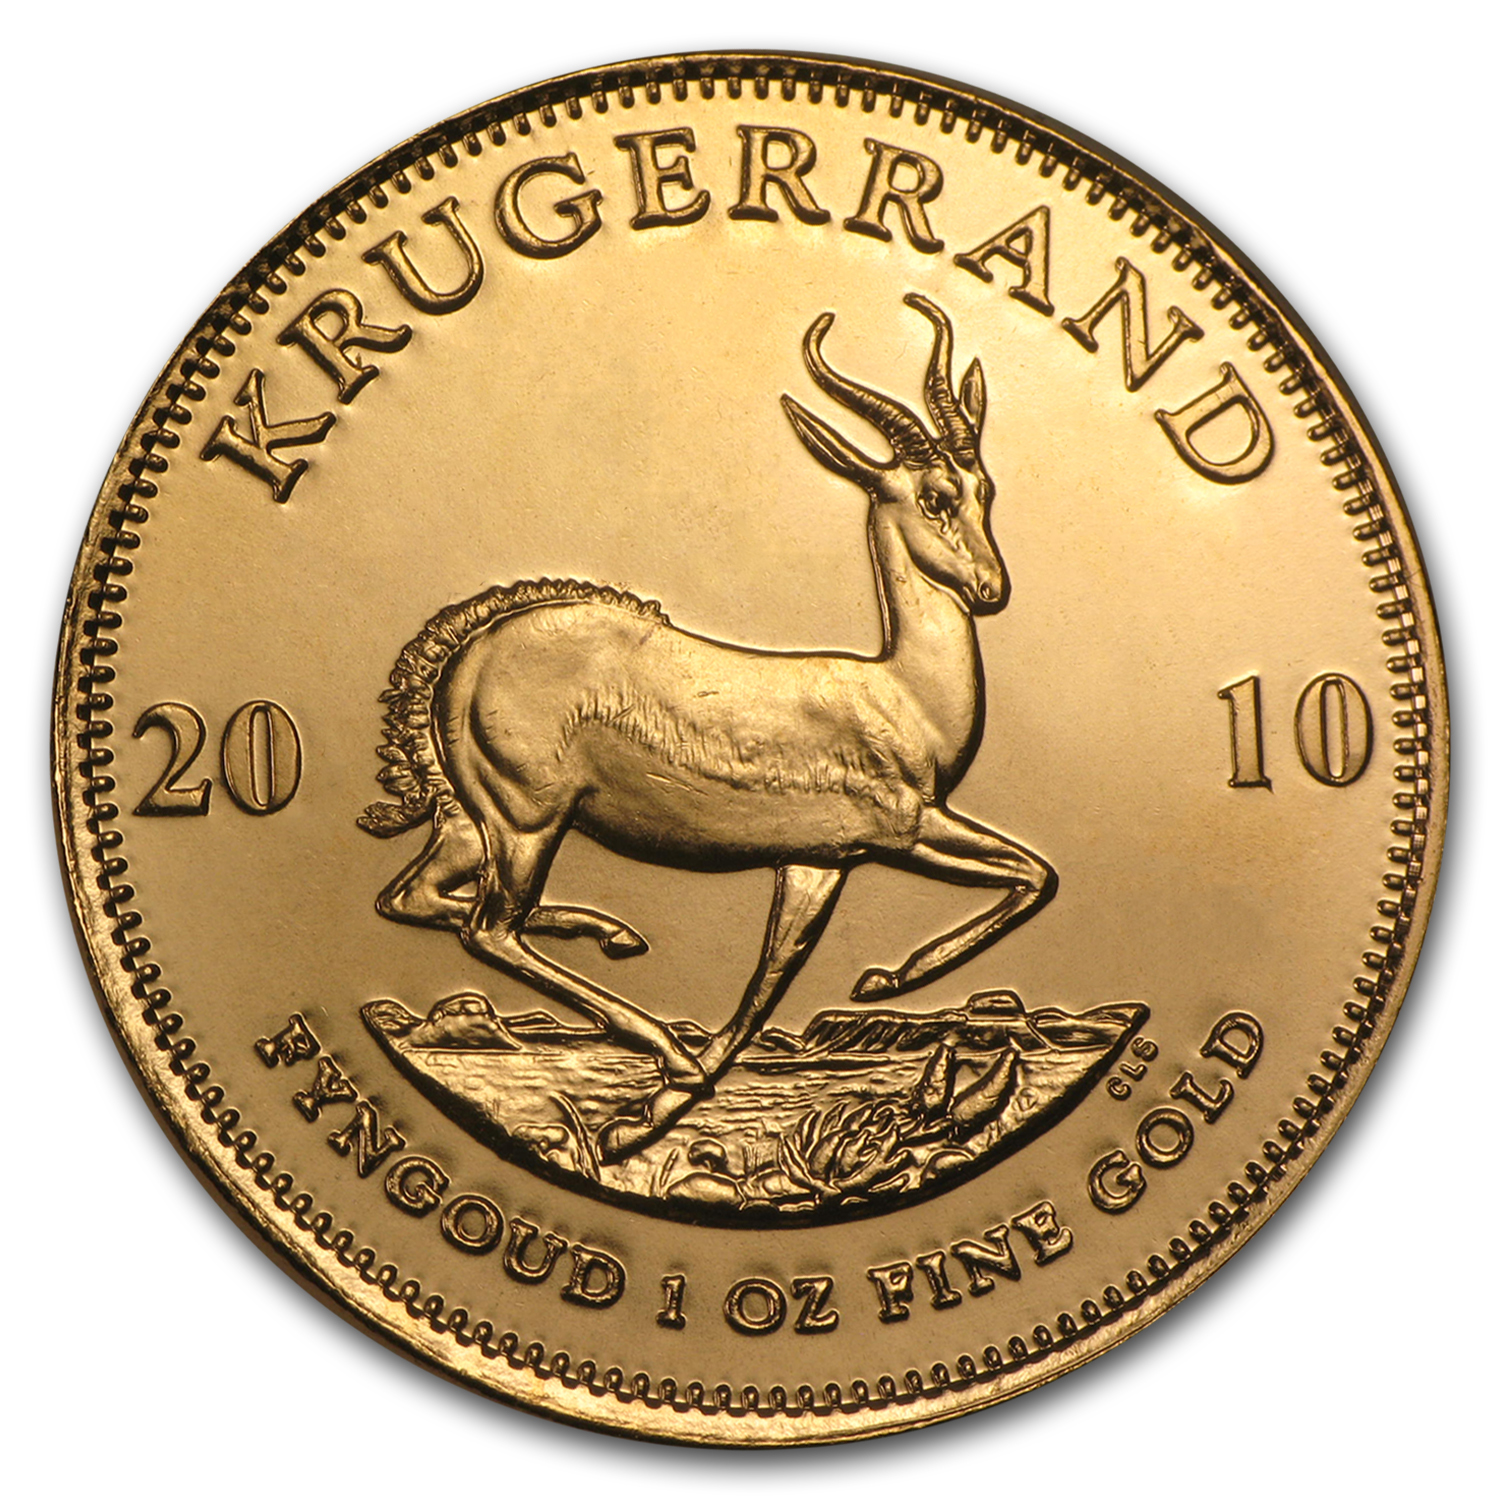 2010 South Africa 1 oz Gold Krugerrand